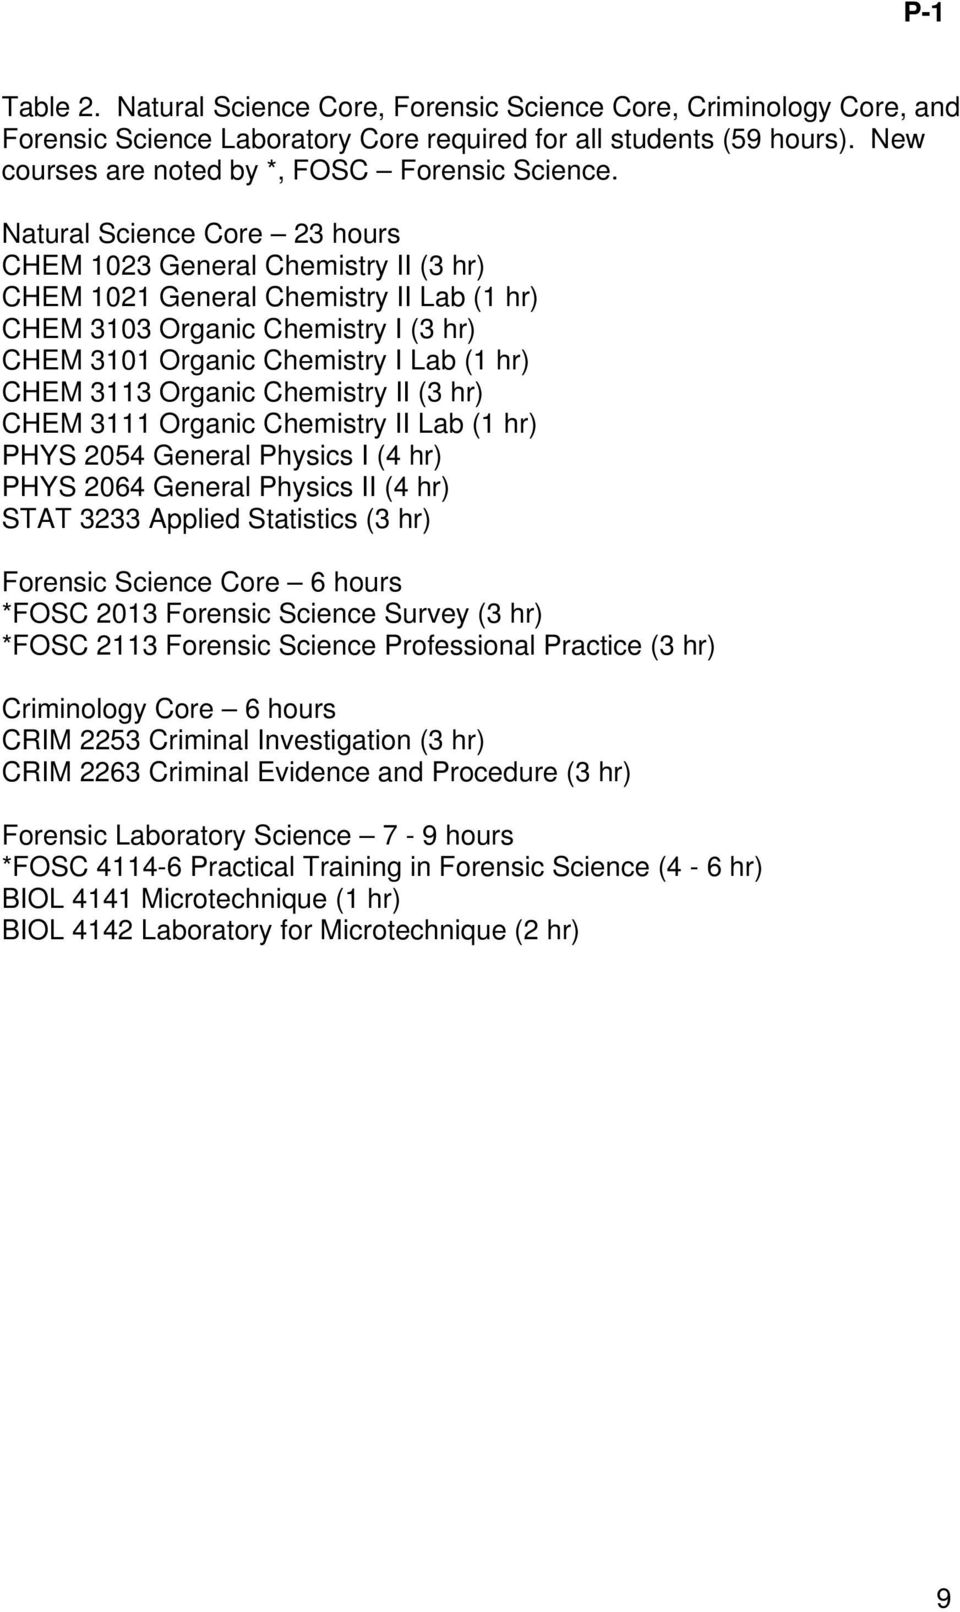 Natural Science Core 23 hours CHEM 1023 General Chemistry II (3 hr) CHEM 1021 General Chemistry II Lab (1 hr) CHEM 3103 Organic Chemistry I (3 hr) CHEM 3101 Organic Chemistry I Lab (1 hr) CHEM 3113